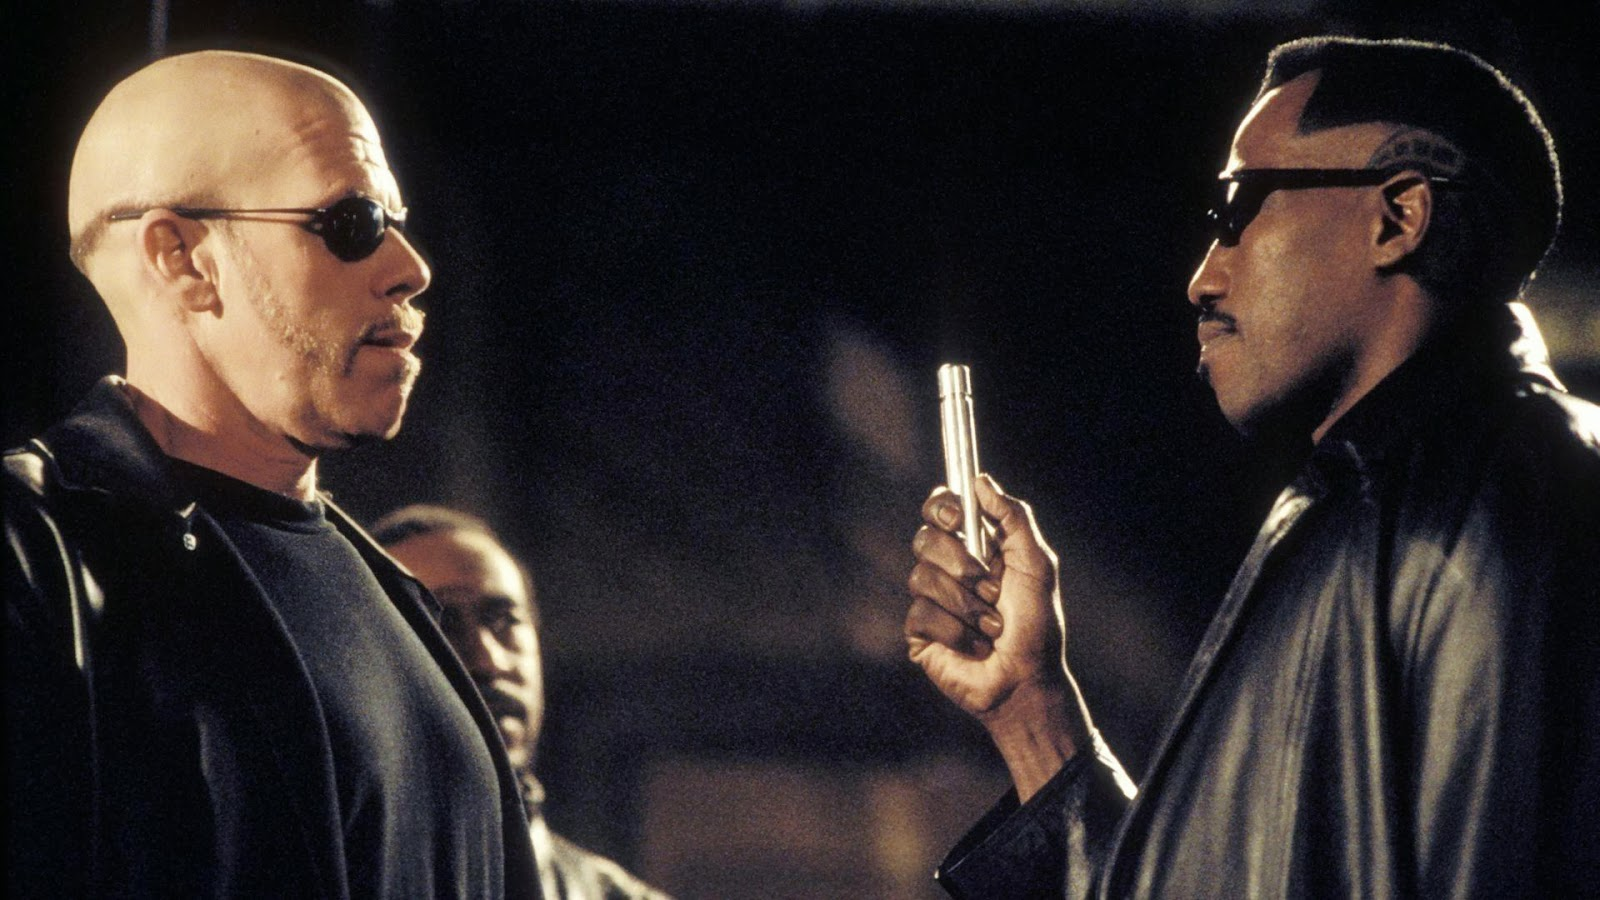 Ron Perlman, Wesley Snipes in Blade II (2002)